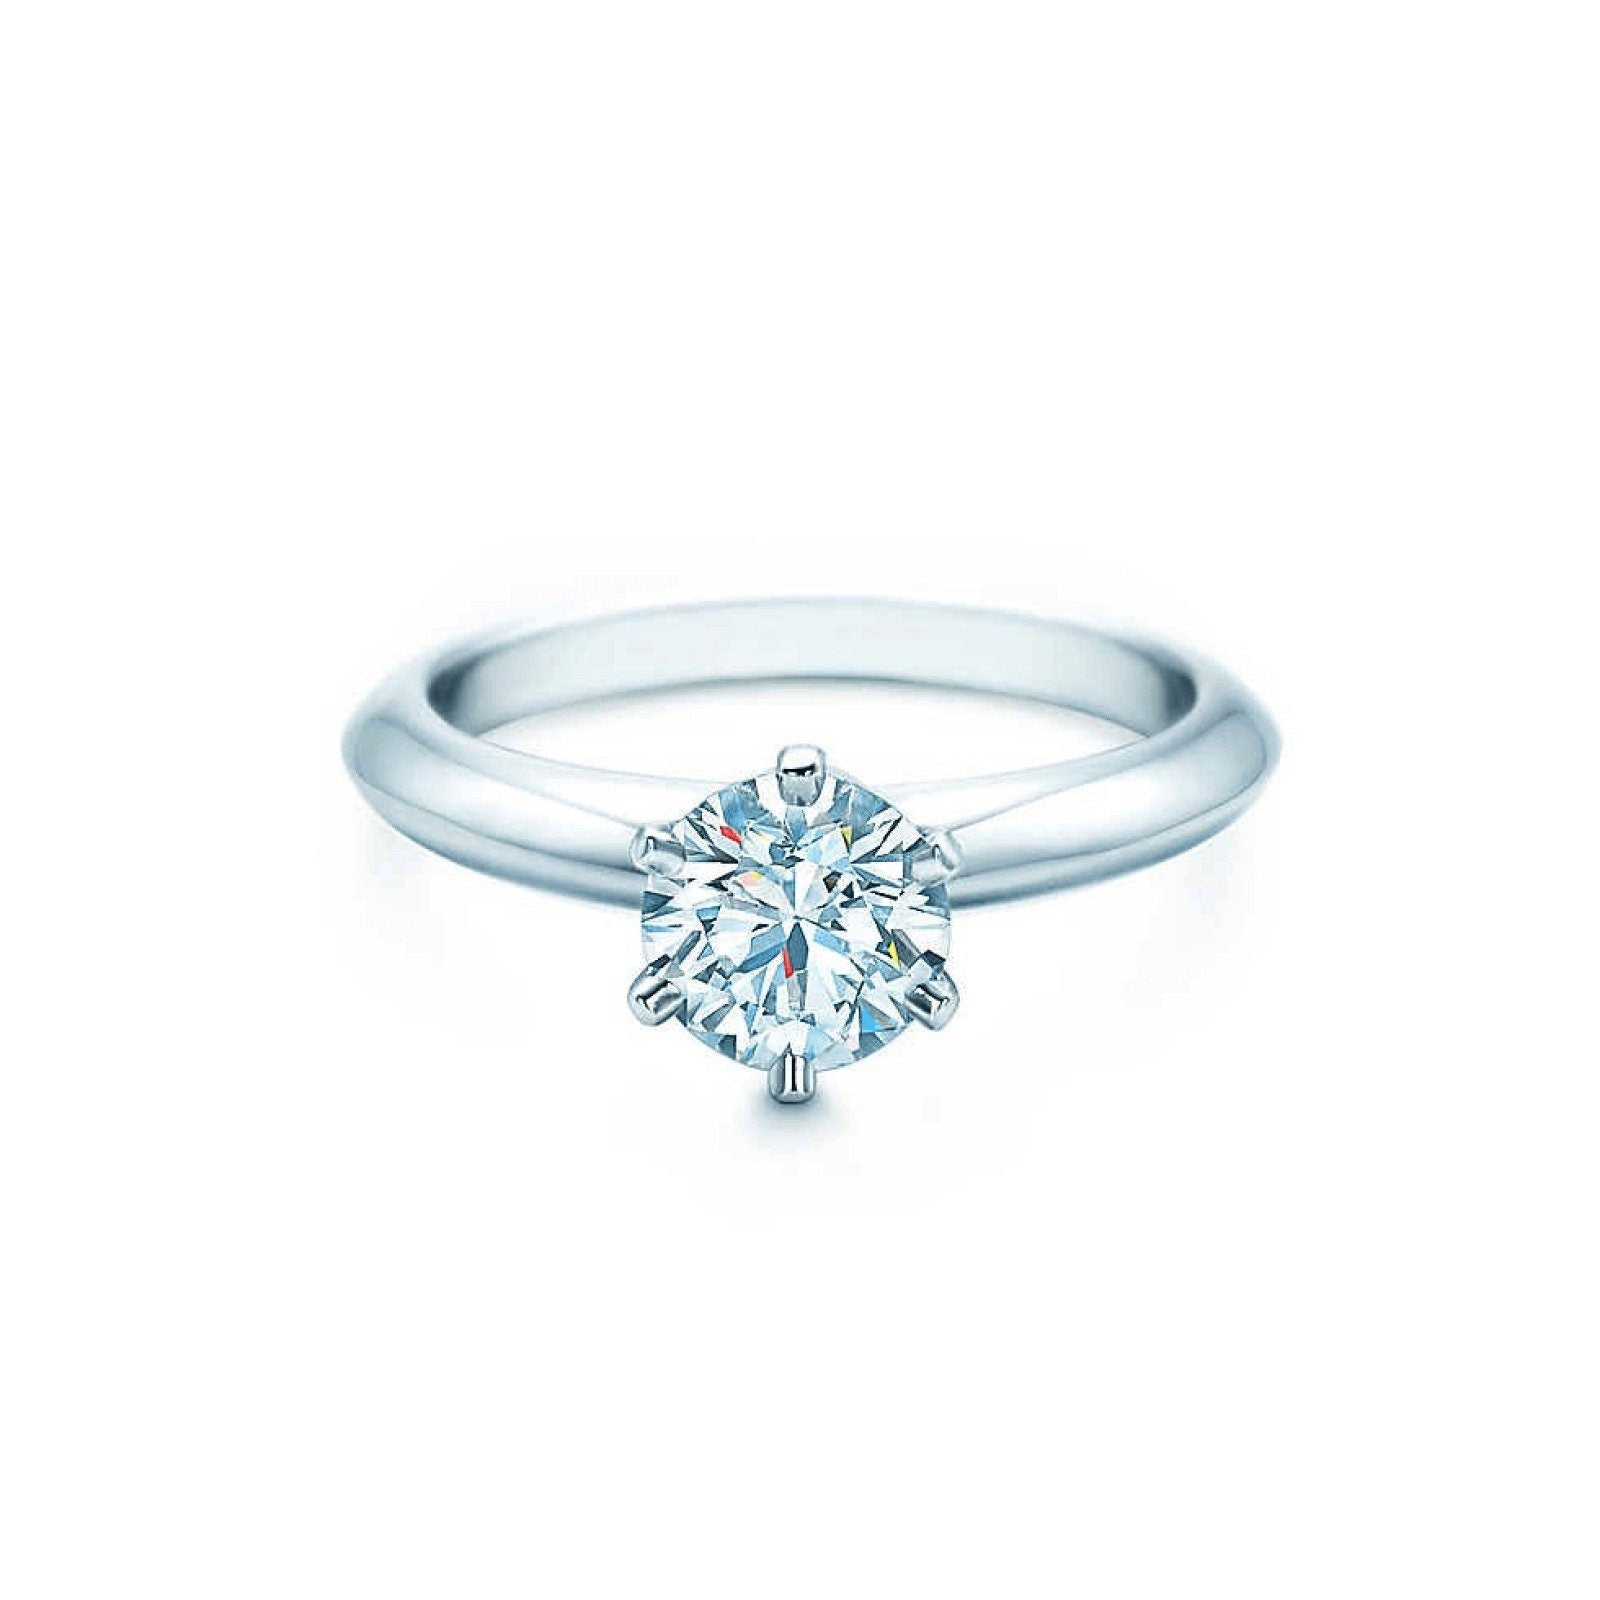 in false upscale rings db product shop classic beers platinum subsampling de round ring diamond scale crop engagement